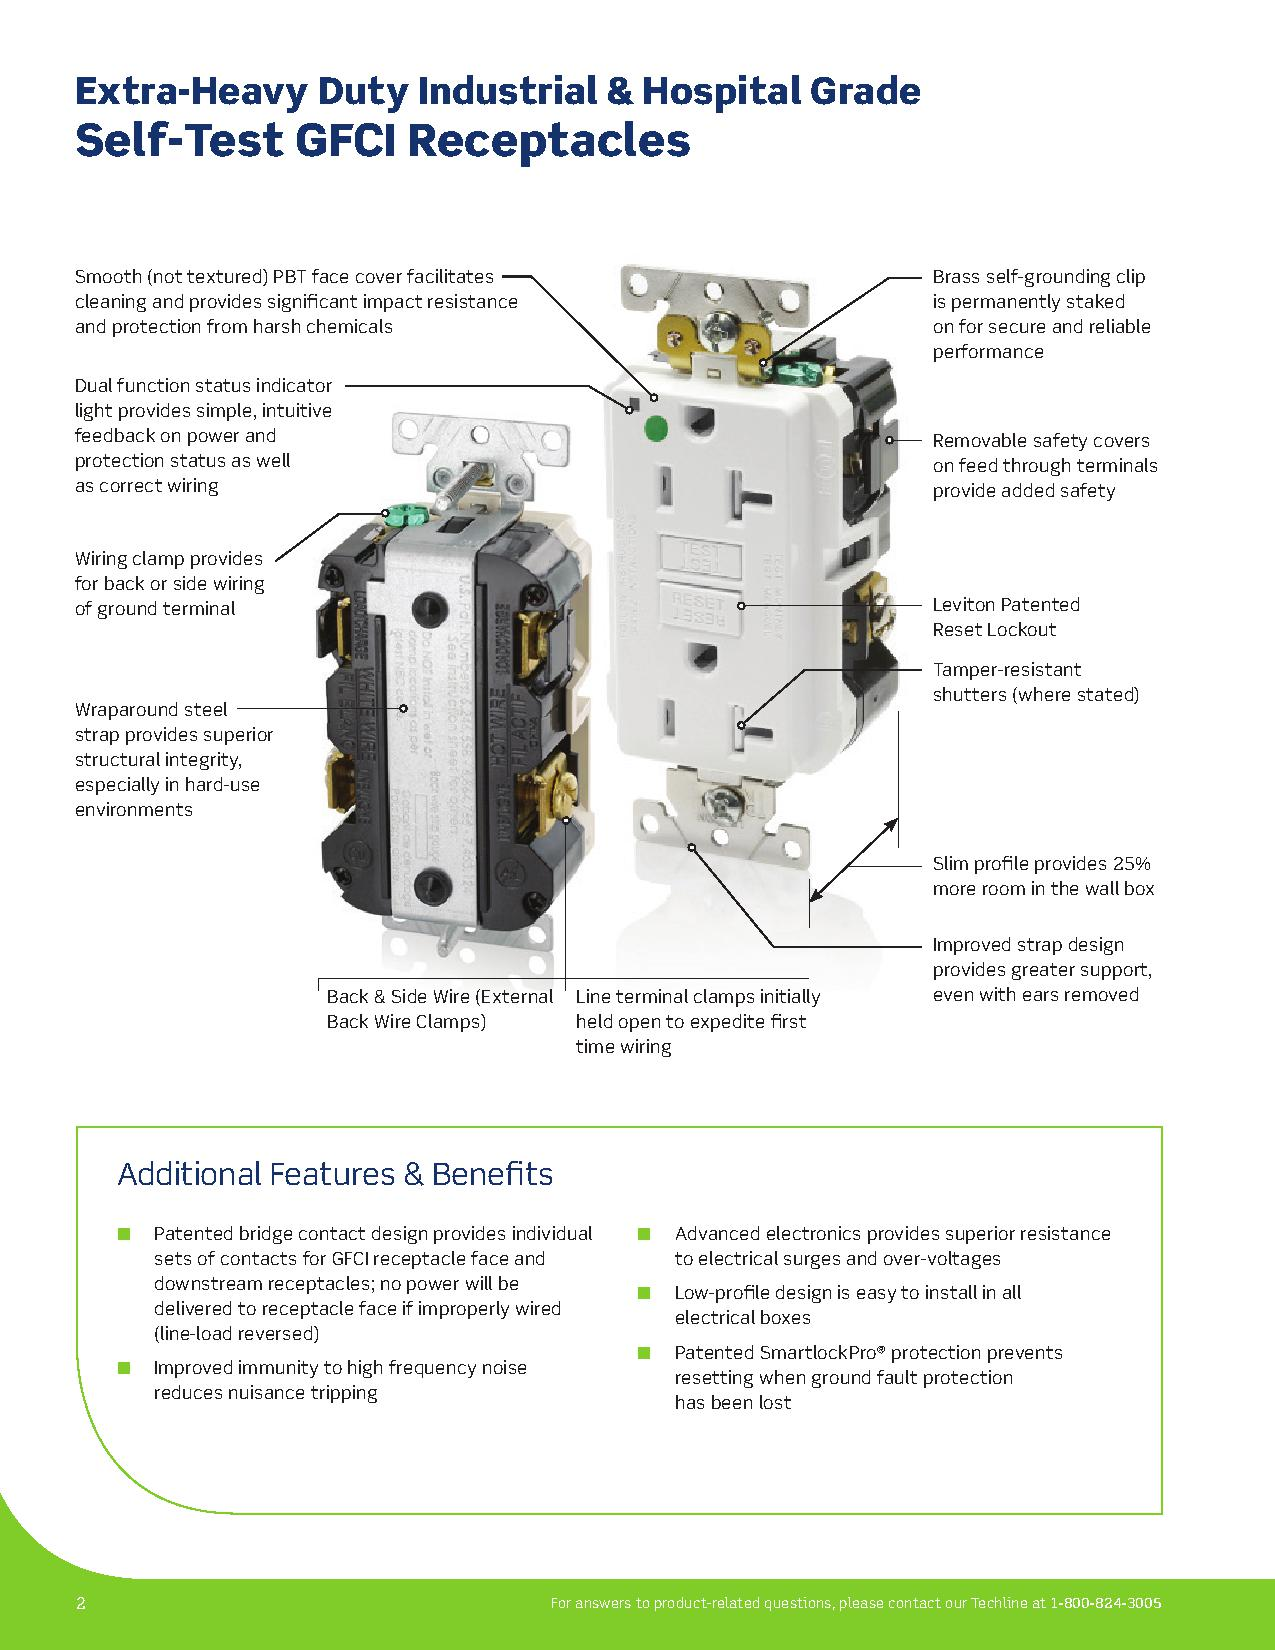 Leviton Extra Heavy Duty Self Test GFCI Receptacles | AJB Sales